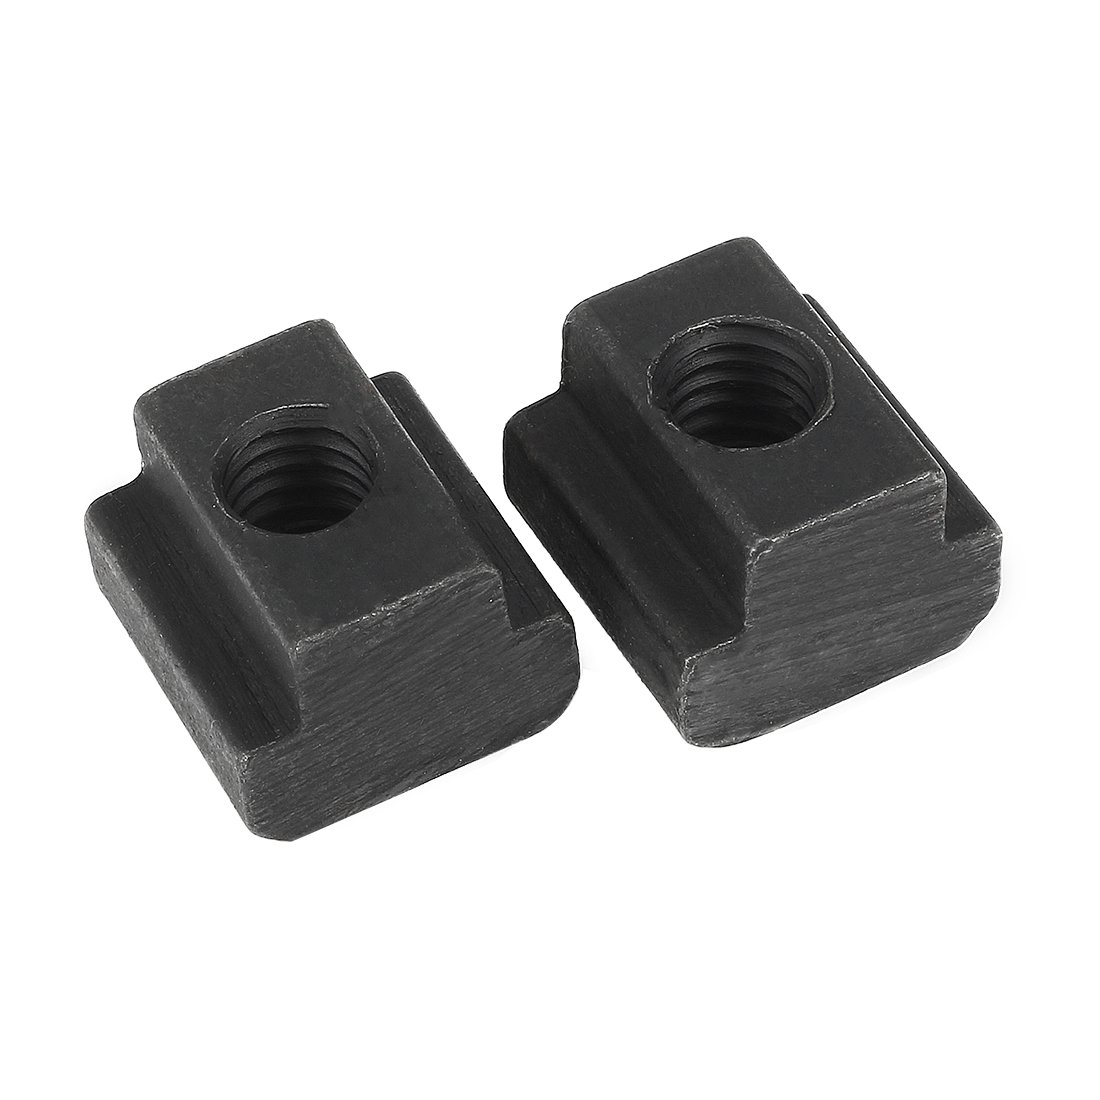 uxcell M6 Female Thread Steel T-Slot Nut Grade 12.9 Tapped Through 2pcs